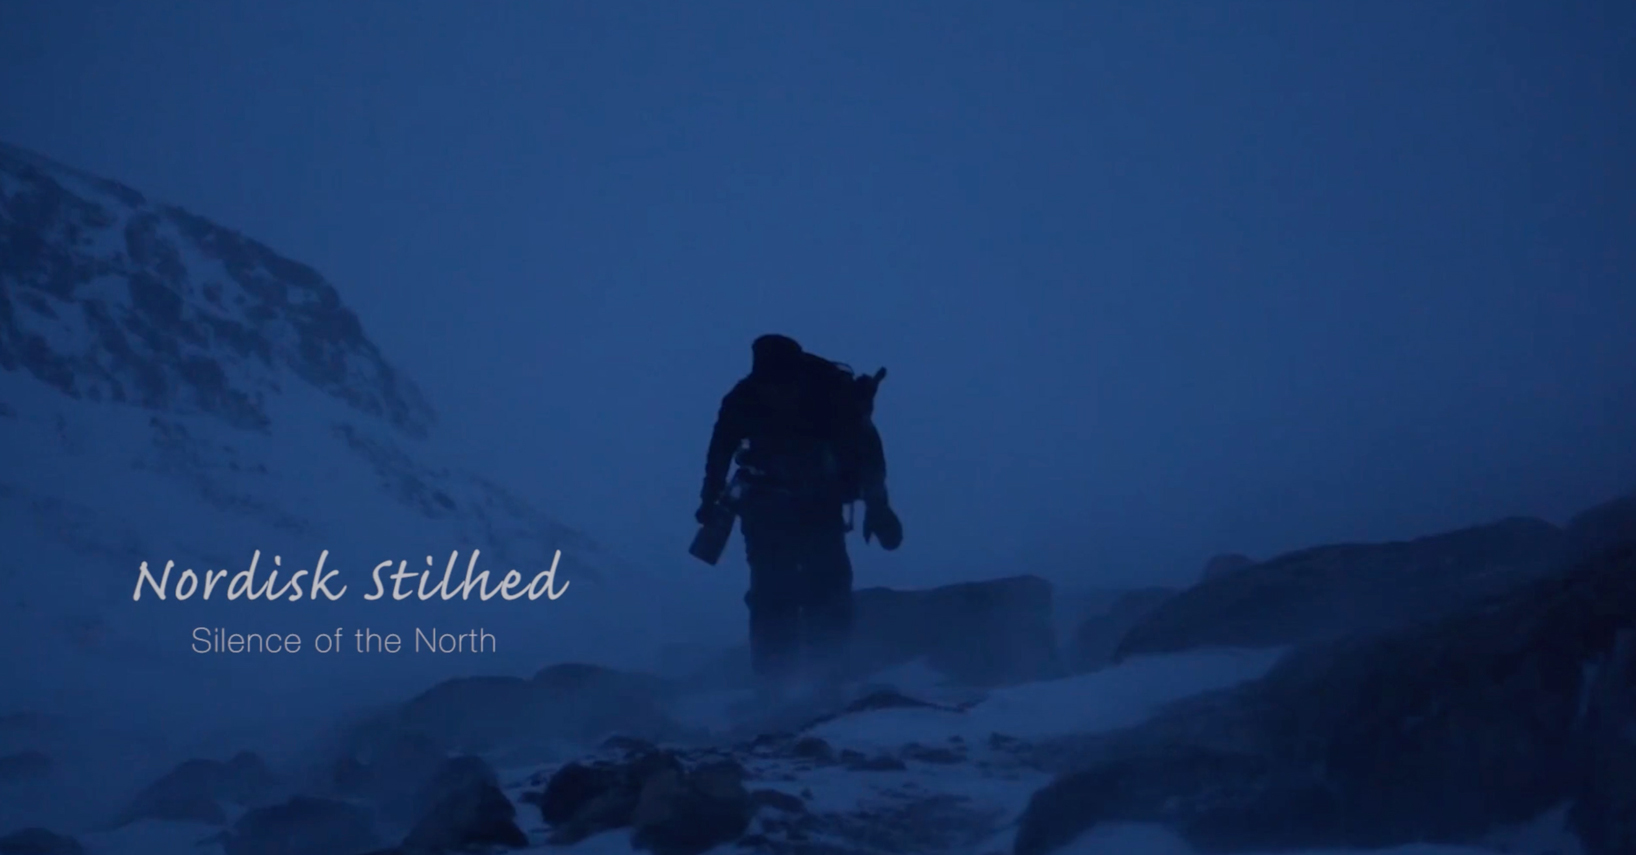 Wildlife photographer, morten hilmer, the silence of the north, video screenshot, the arctic